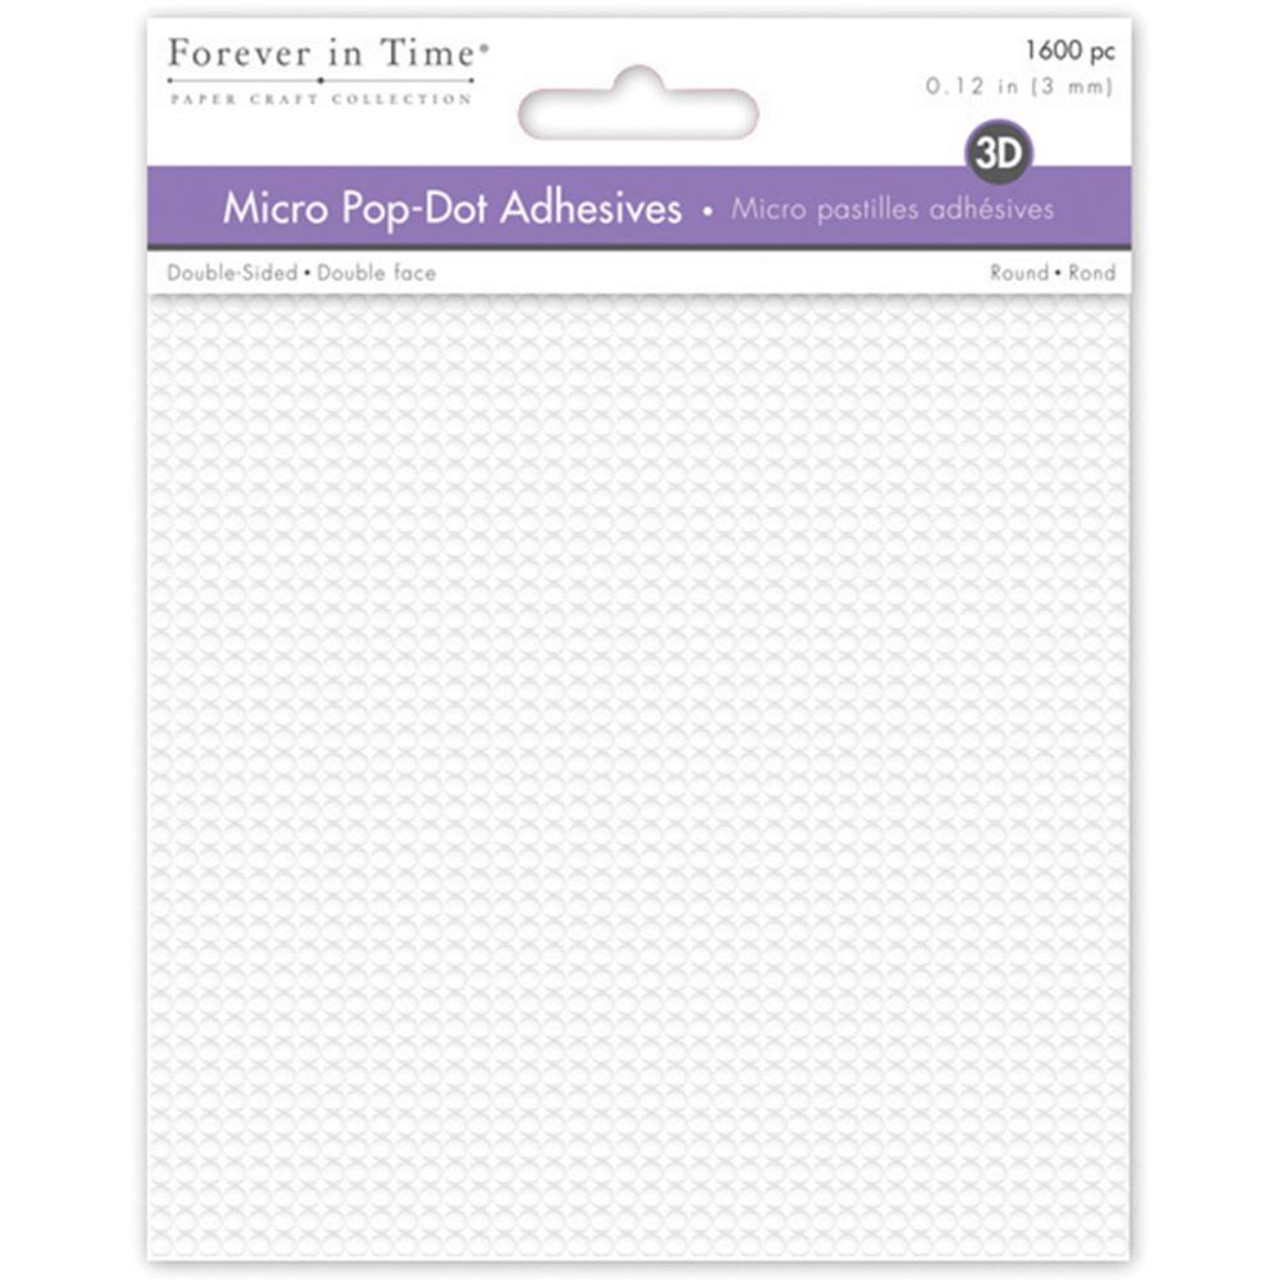 Micro Pop Dots Adhesive by Notions - Pkg. of 1600 - .12 inch